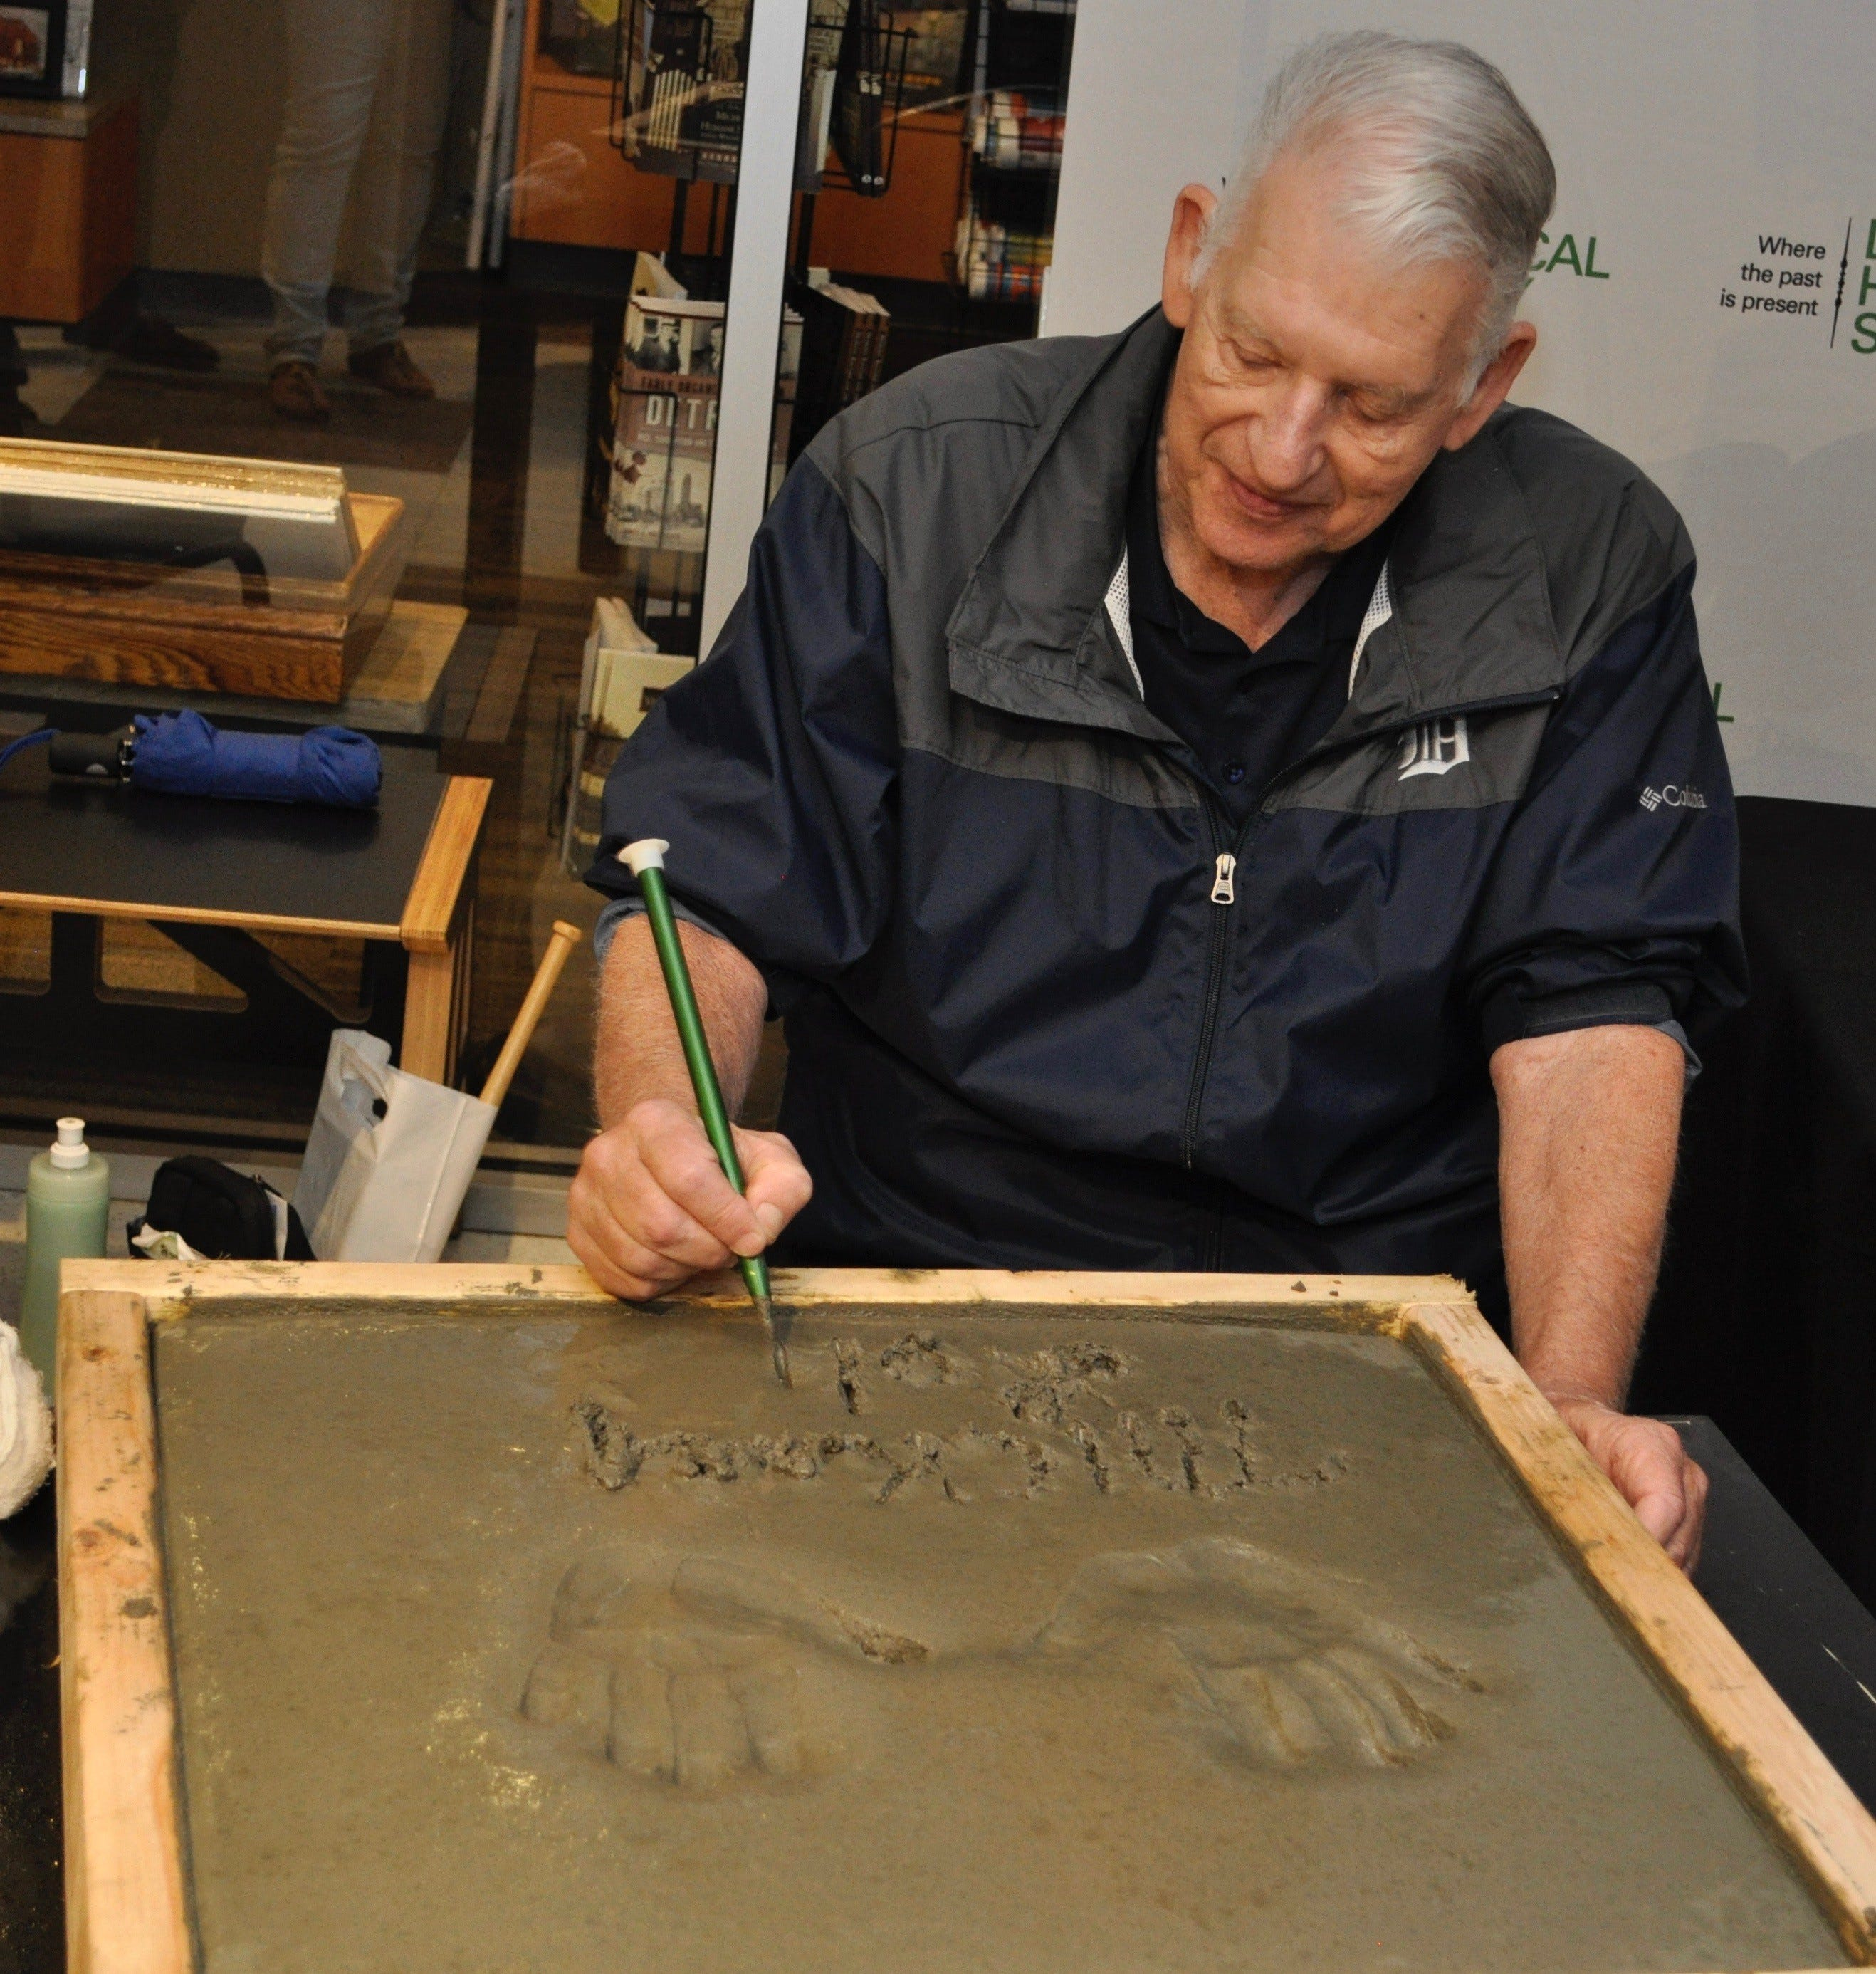 Detroit Historical Society celebrates city's birthday with Tigers great Mickey Lolich